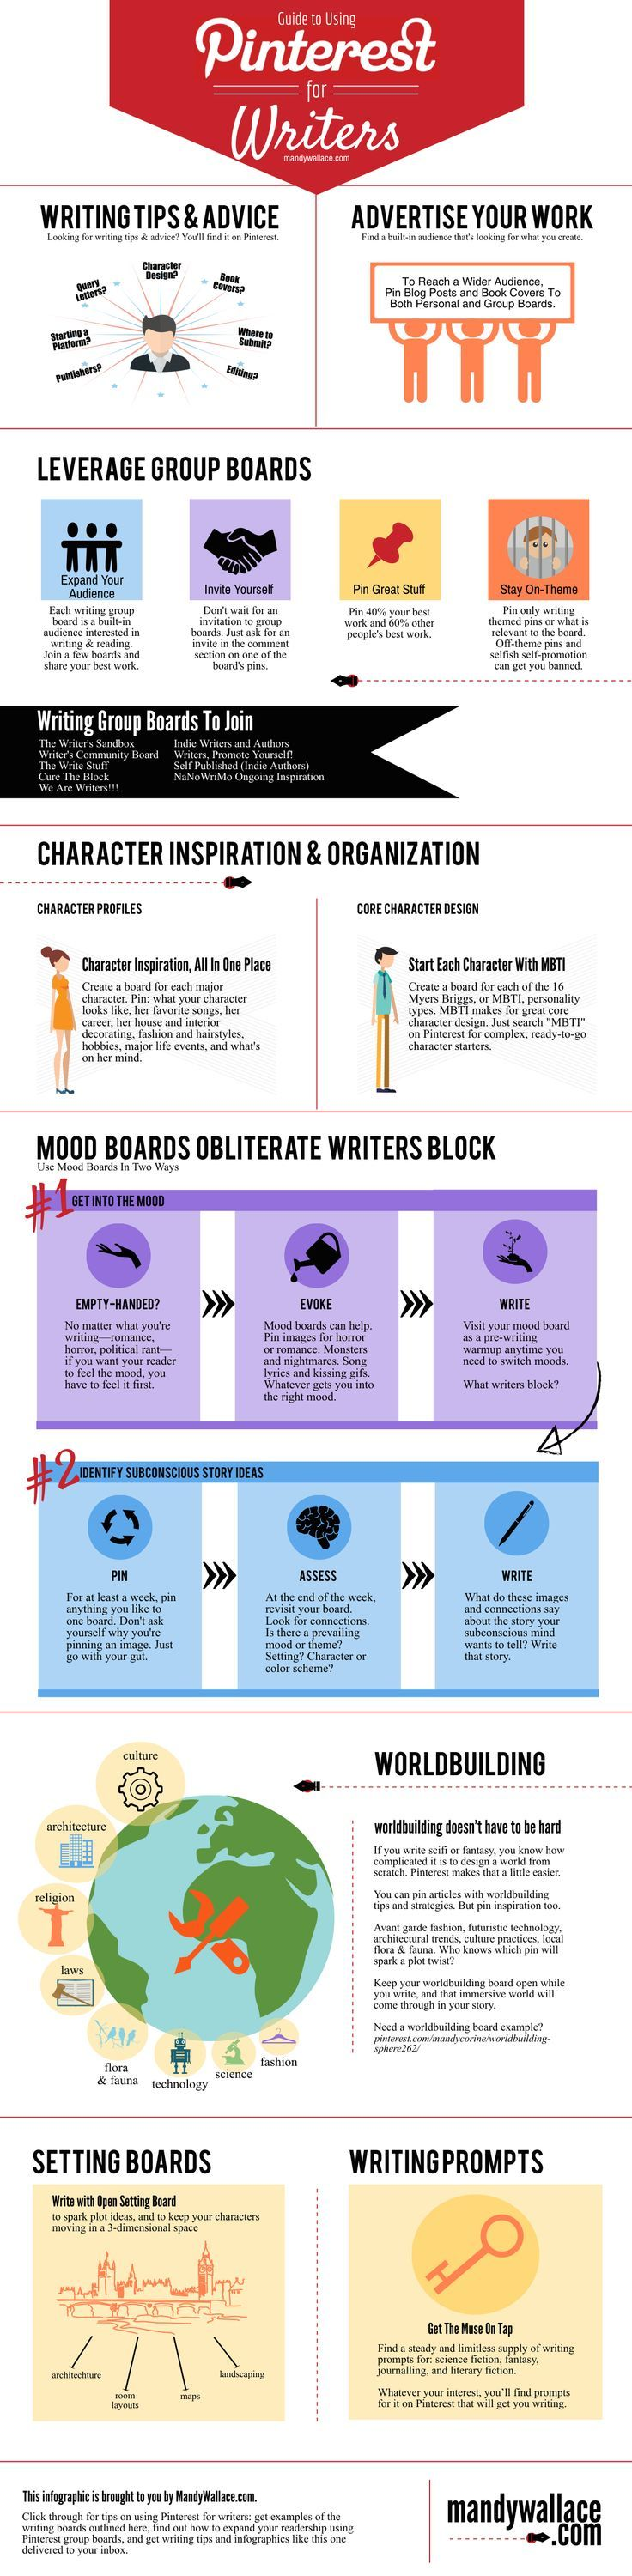 Guide To Using Pinterest for Writers. Writing tips for creative writers and how to market your writing using Pinterest (infographic)